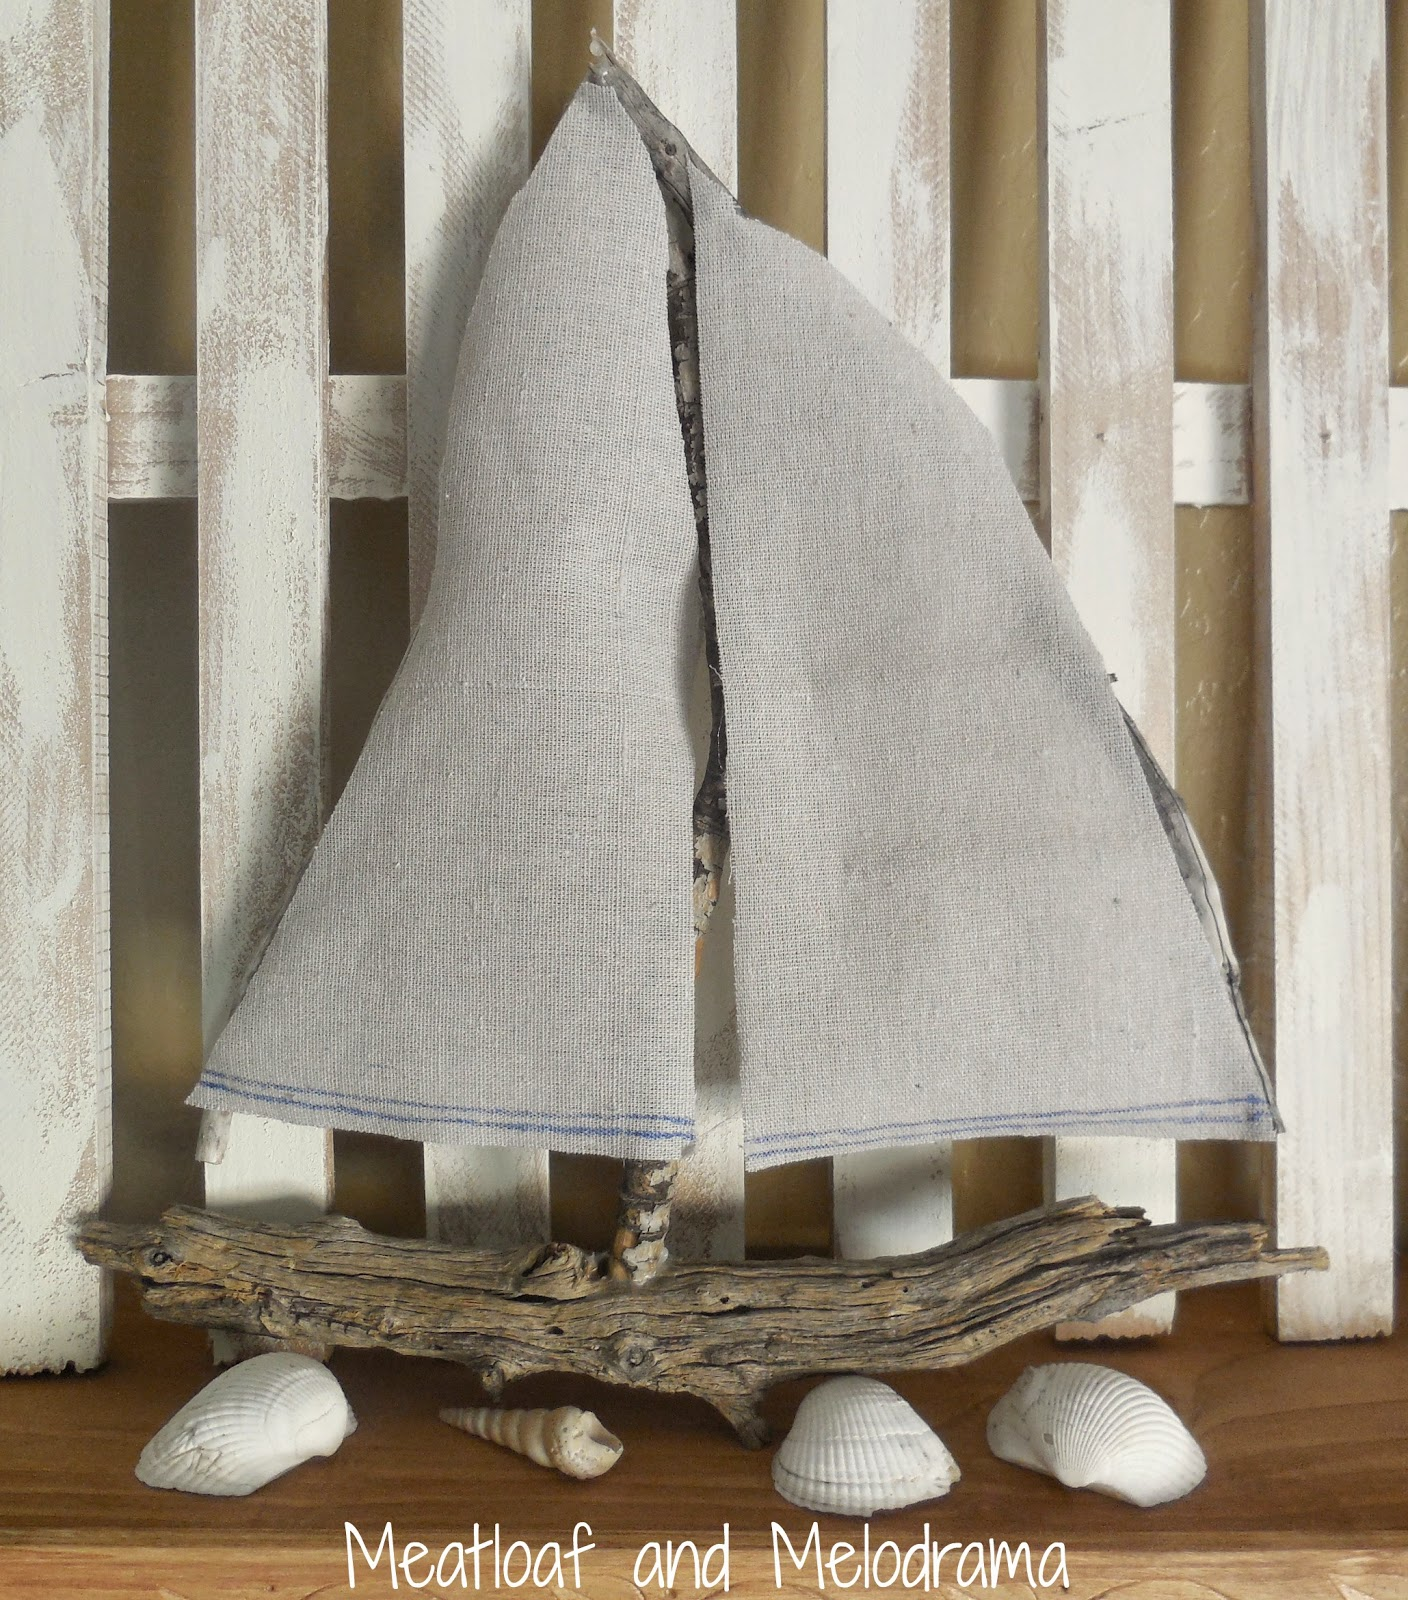 sailboat made from drop cloth and branches